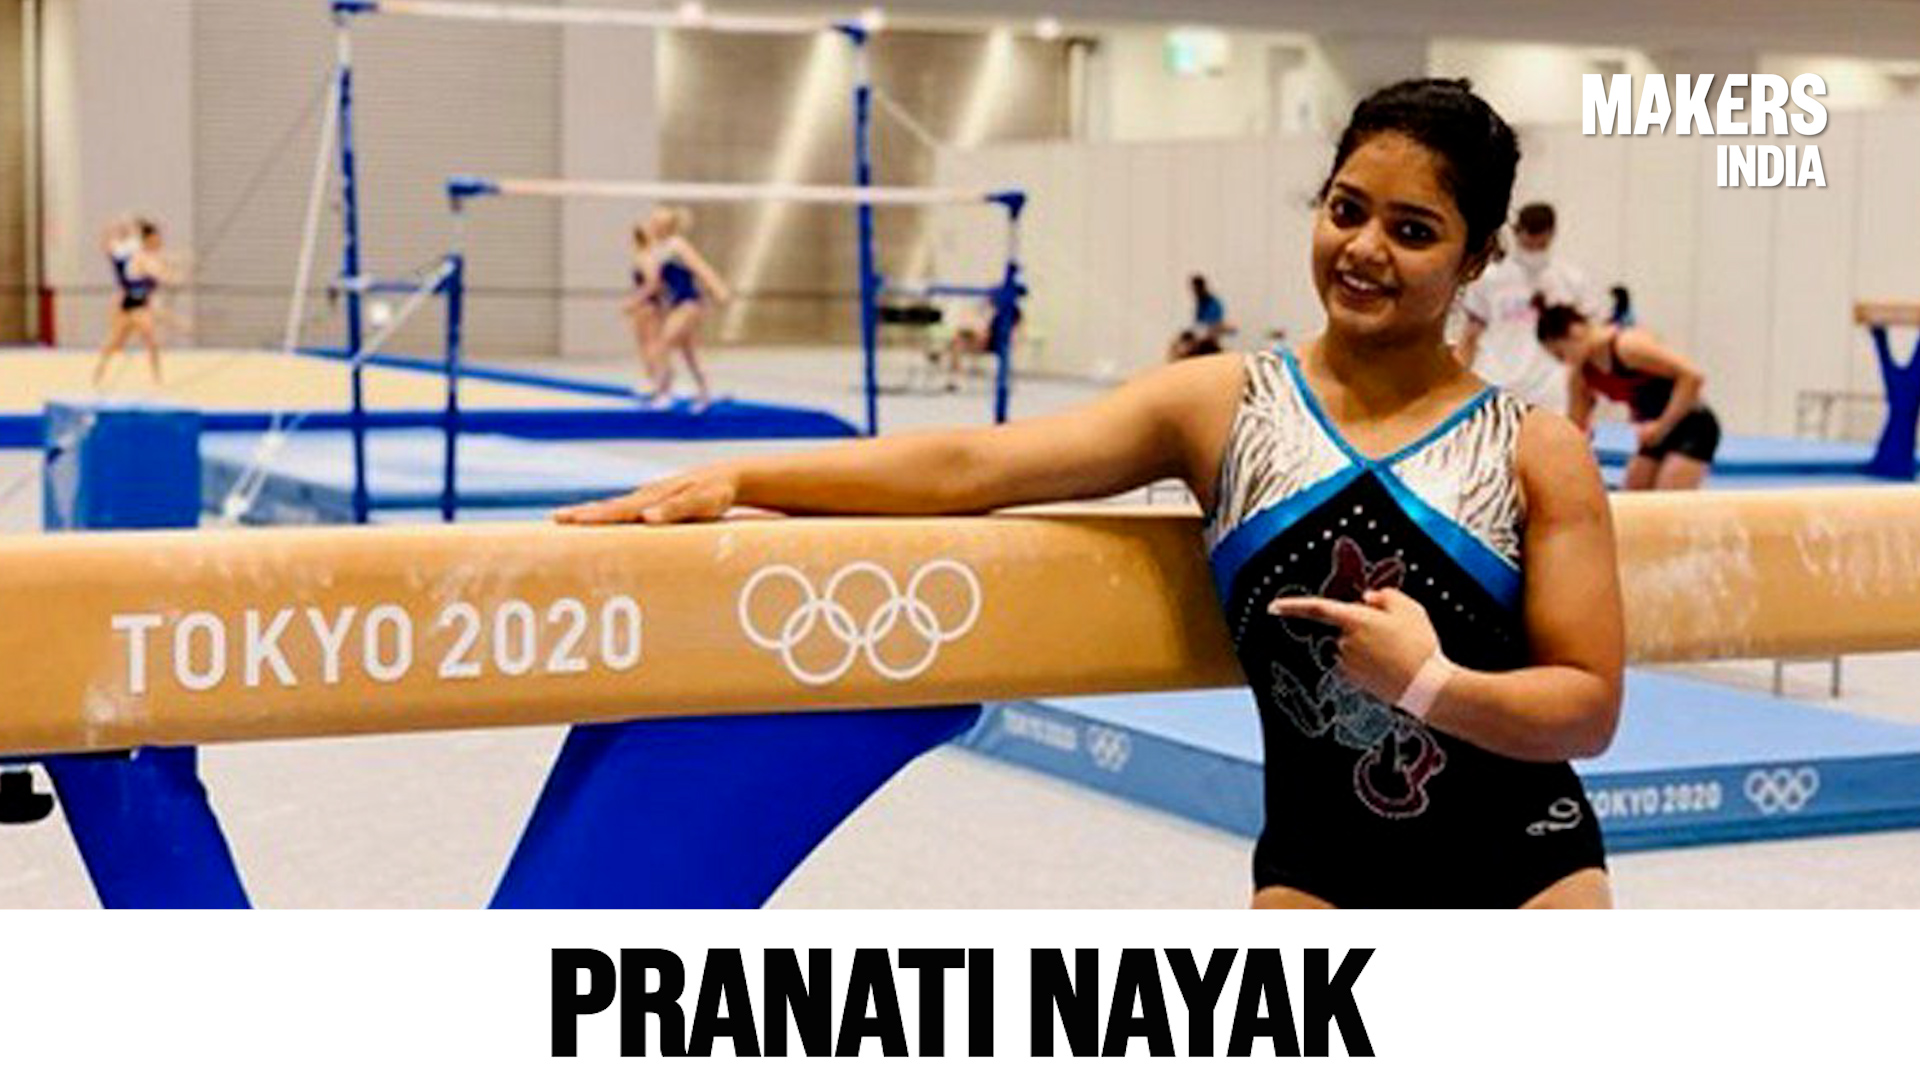 Meet Pranati Nayak, The Only Indian Gymnast To Qualify For Tokyo Games